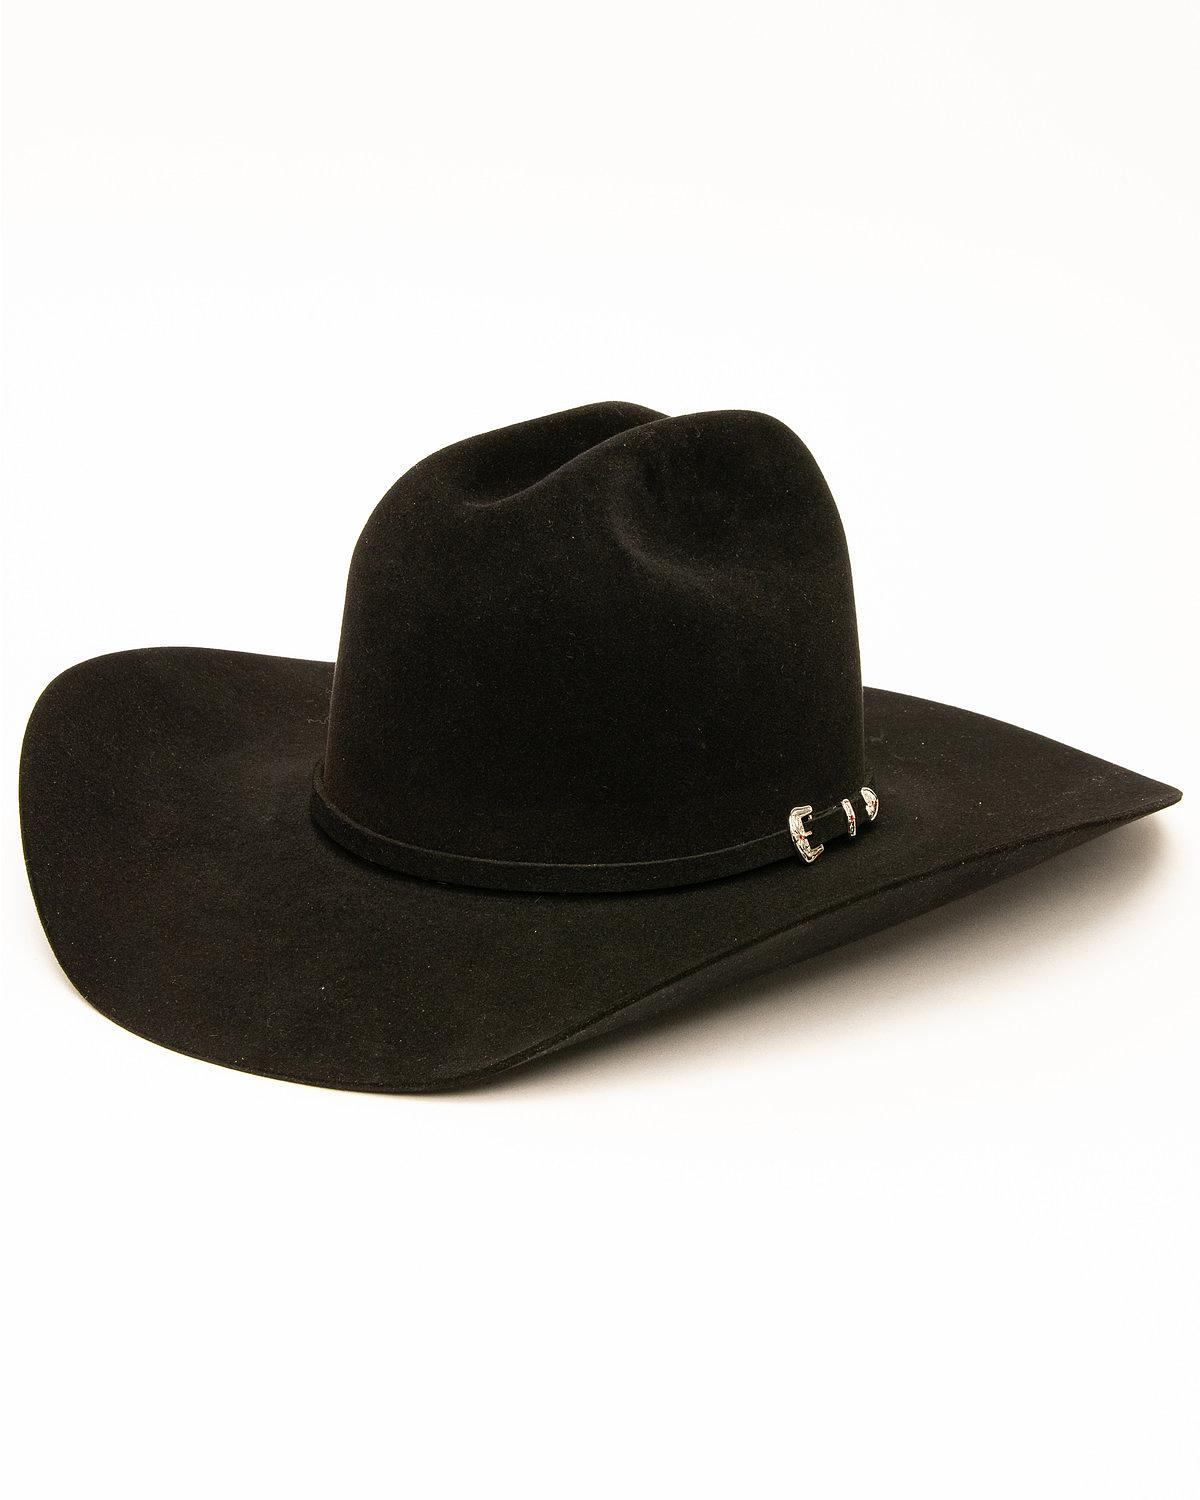 0d9d811fc3a933 Image is loading Rodeo-King-Men-039-s-10X-Low-Felt-